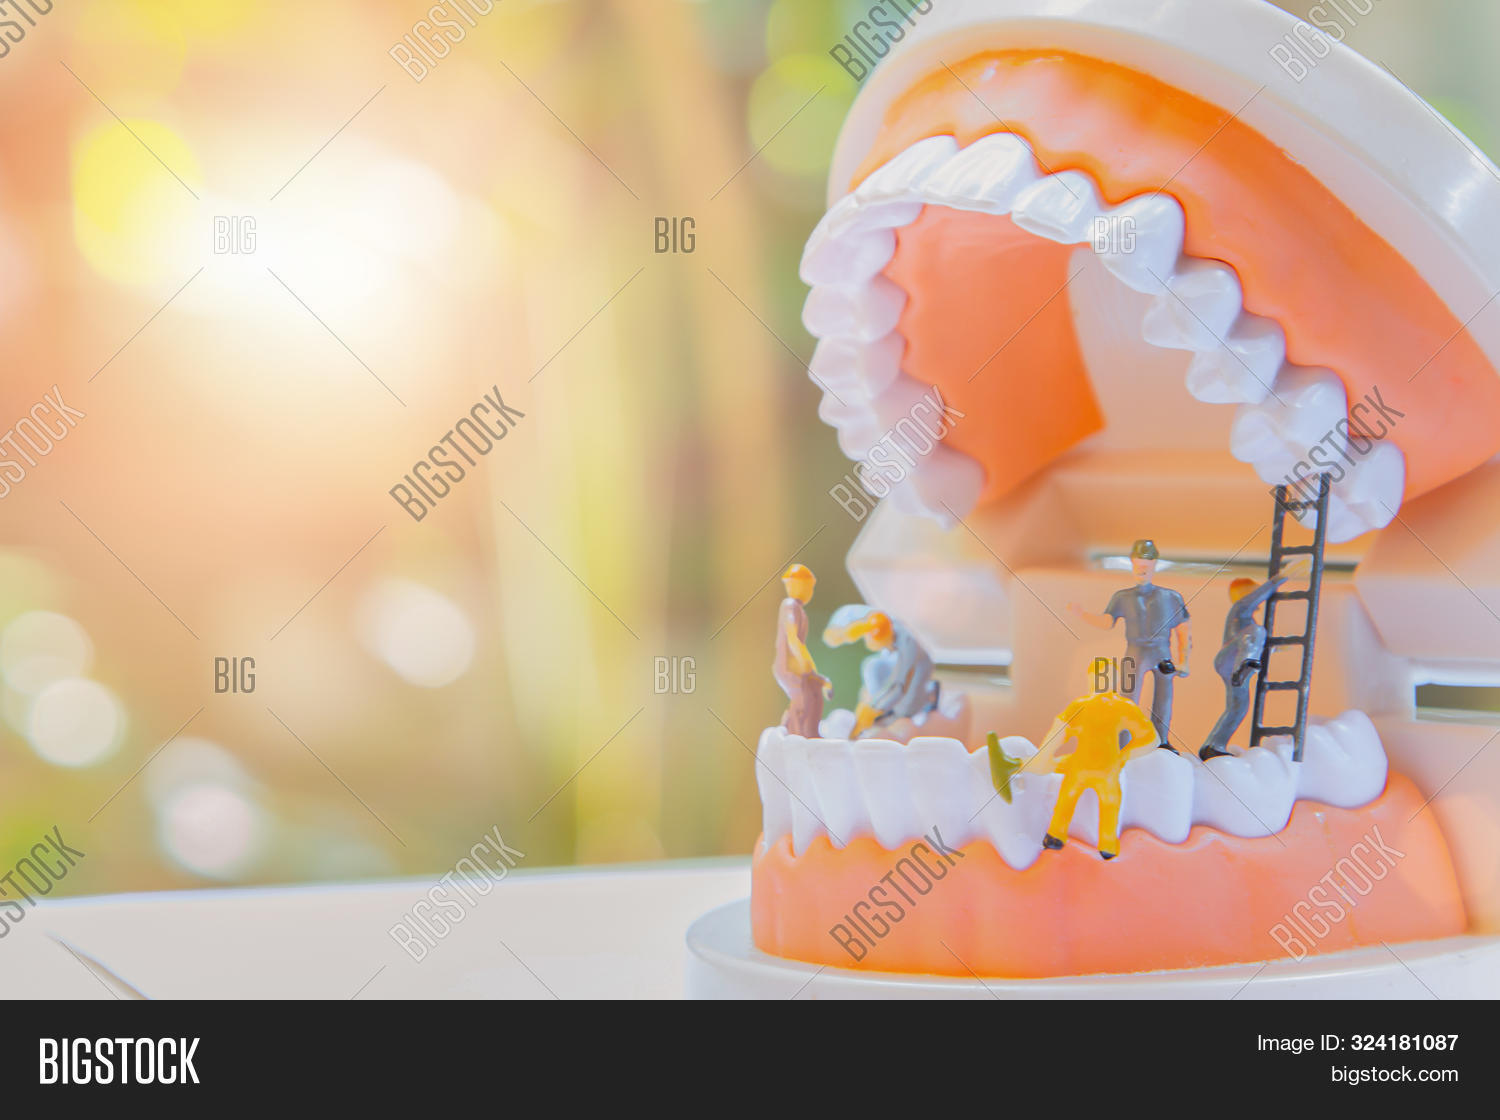 Miniature Worker People Or Small Figure Cleaning White Tooth Model As Medical And Healthcare Concept